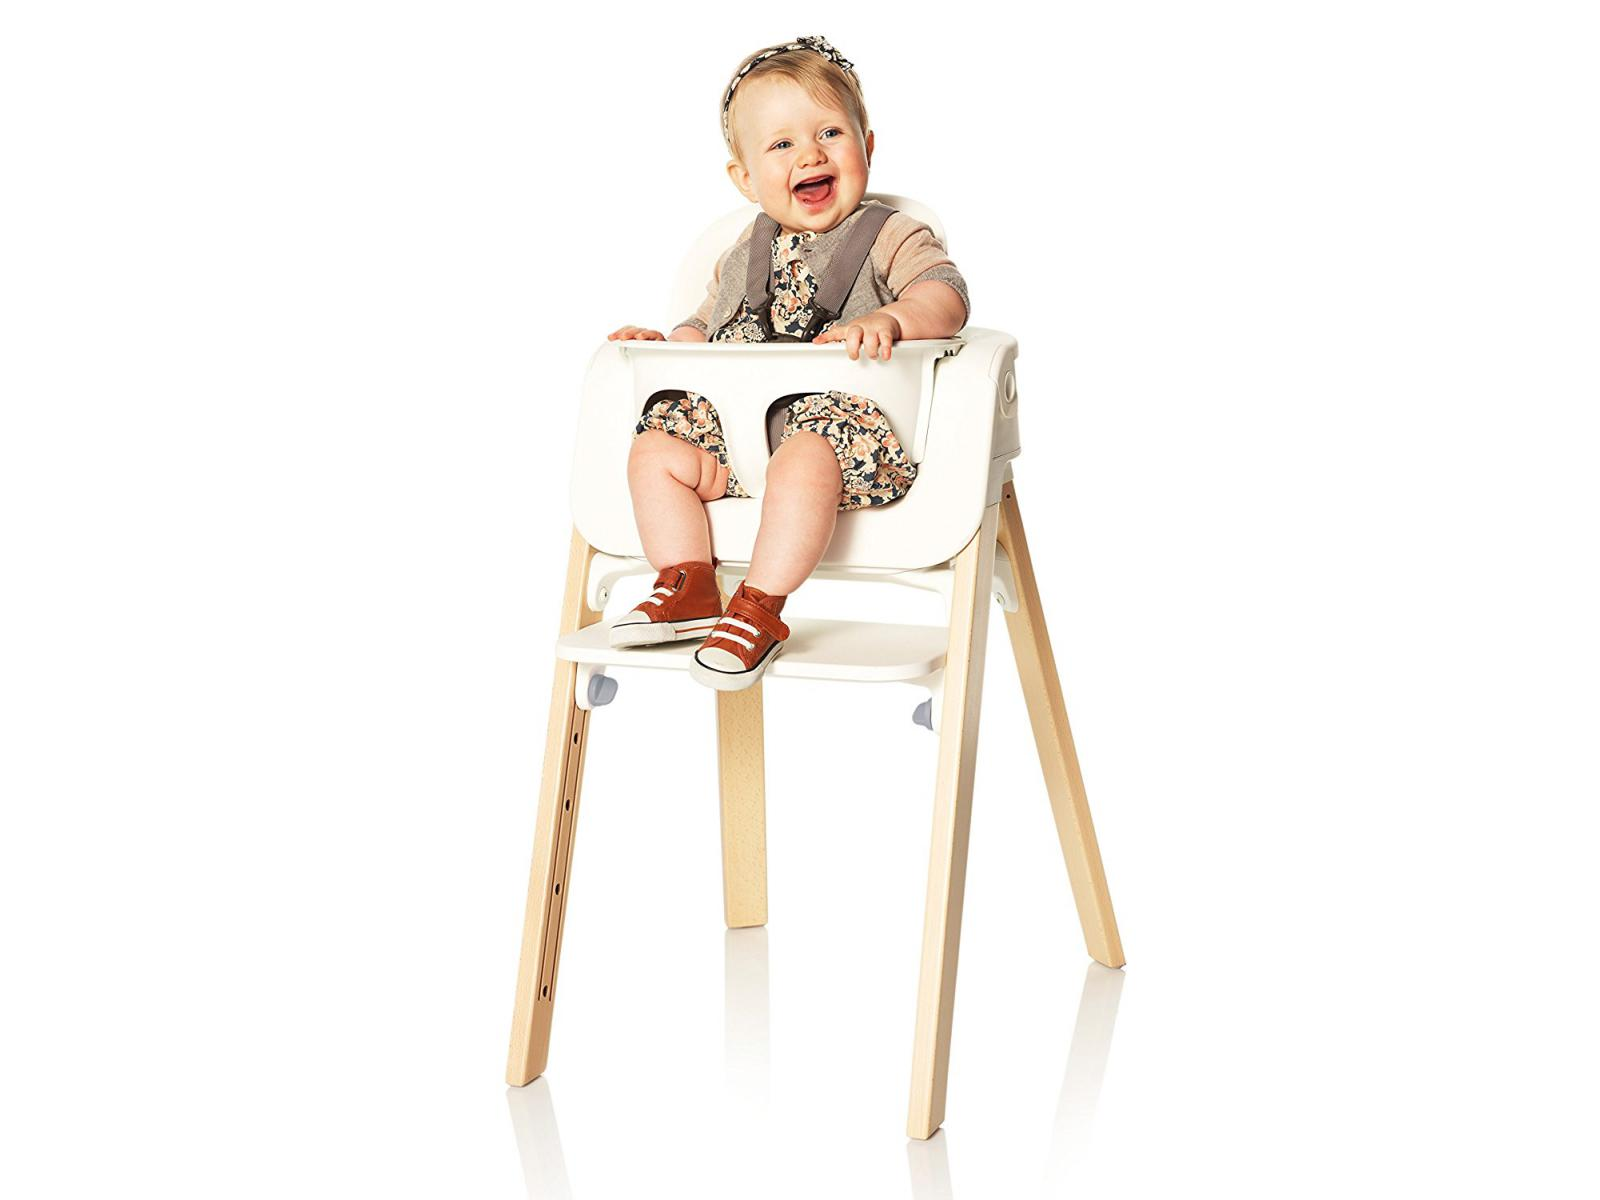 Haute Pour Chaise Blanc Steps Stokke Baby Omnw8vn0 Set JK3T1clF